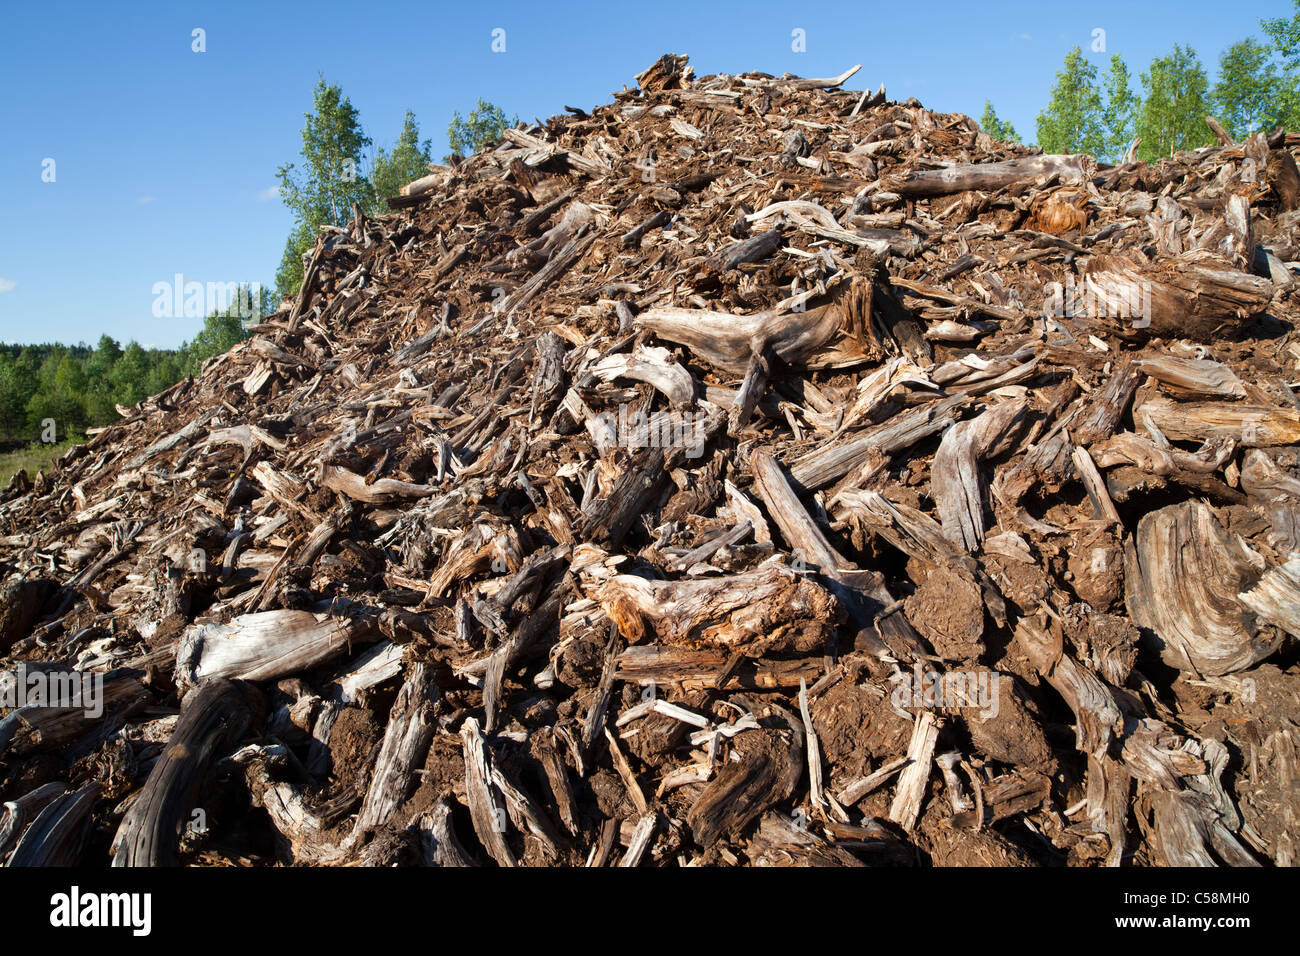 Pile of tree stumps and roots picked from peat extraction area - Stock Image